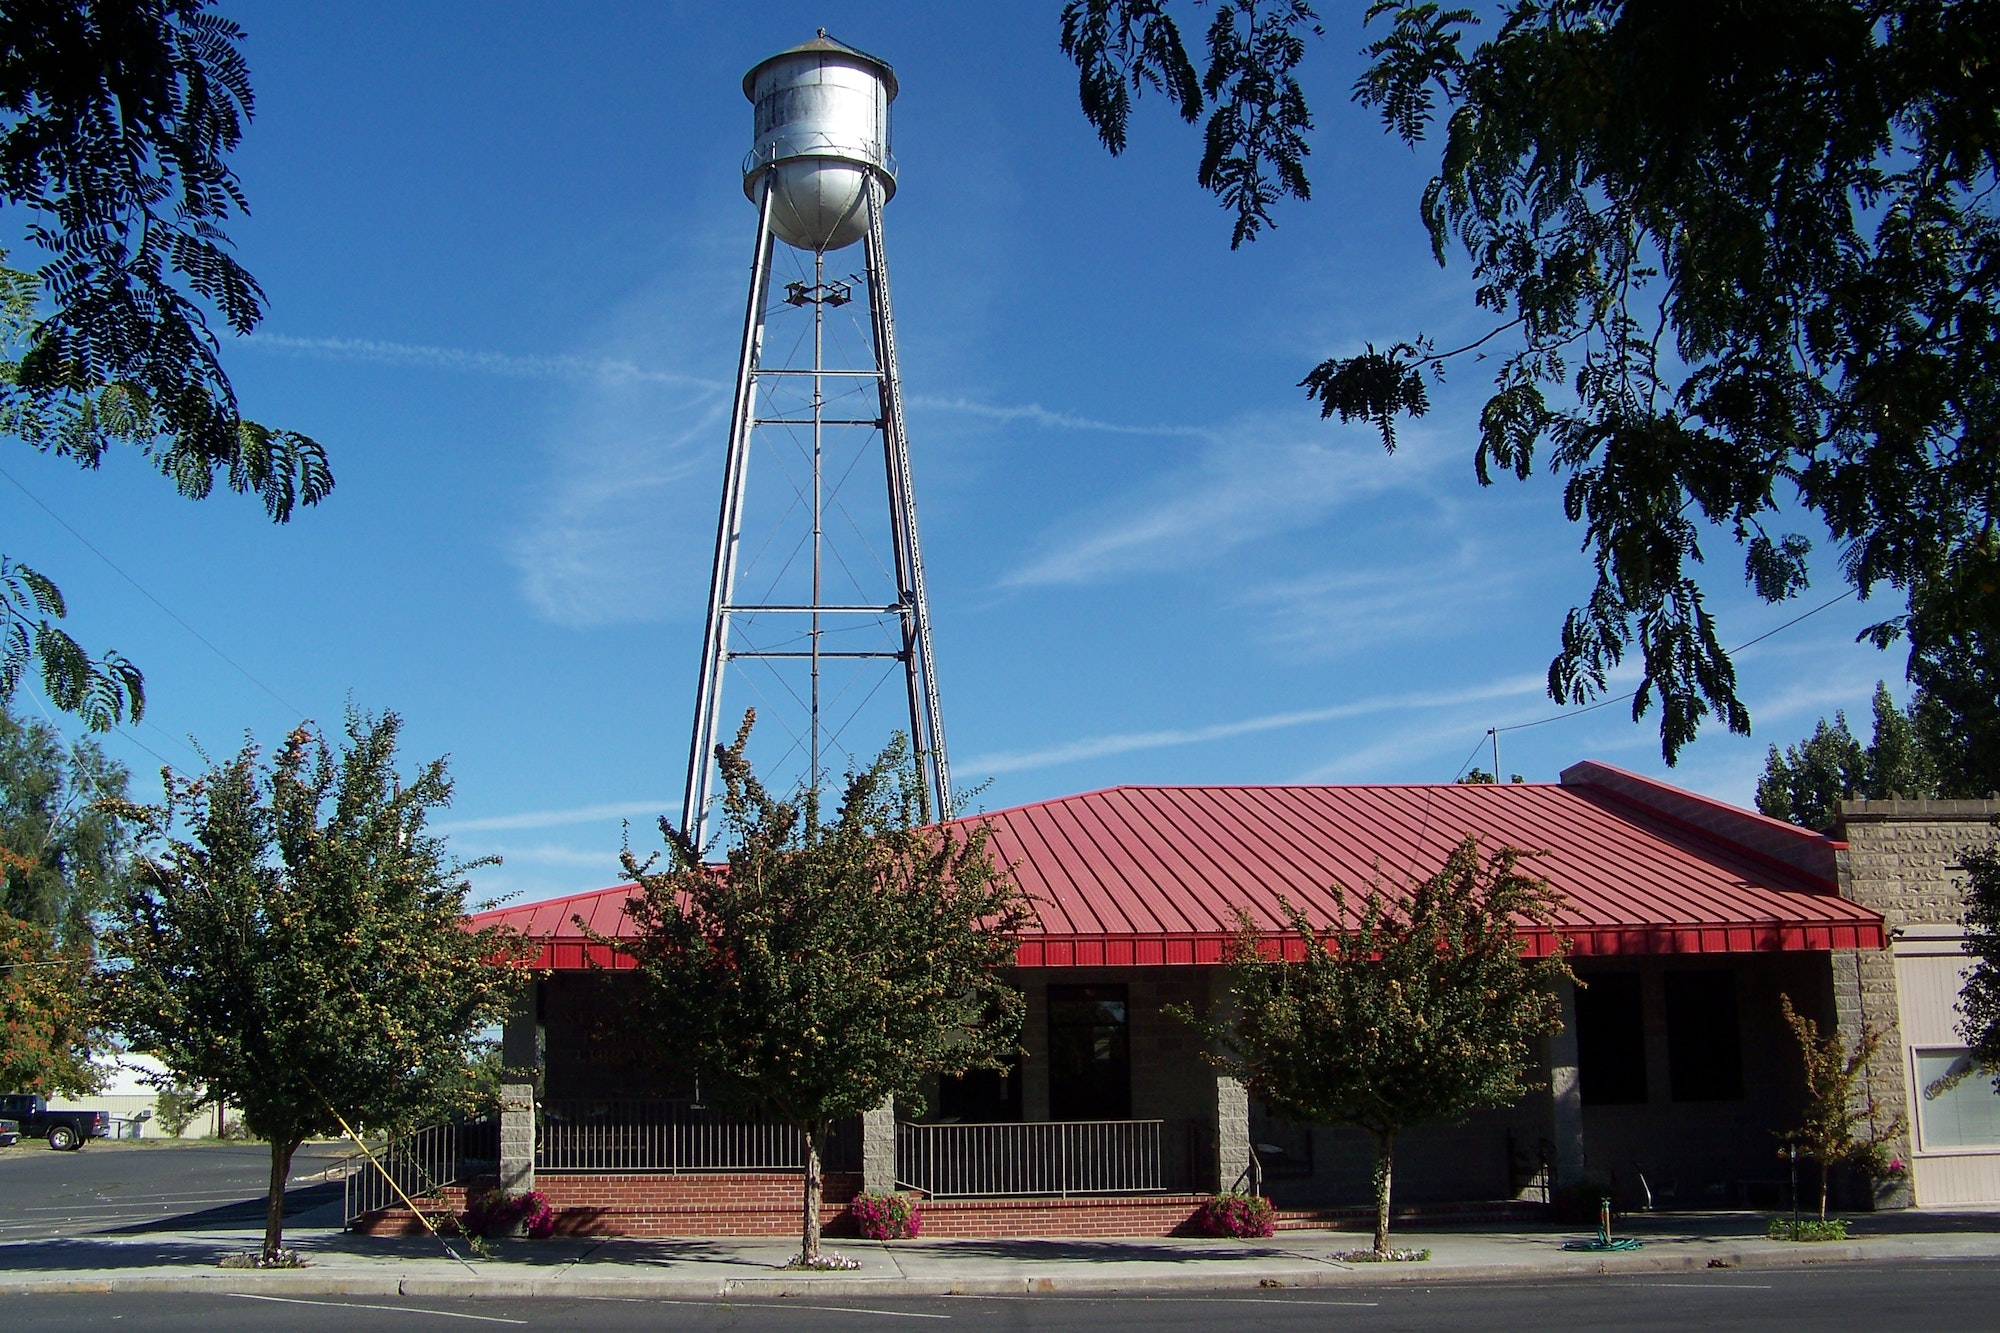 Stanfield Public Library building